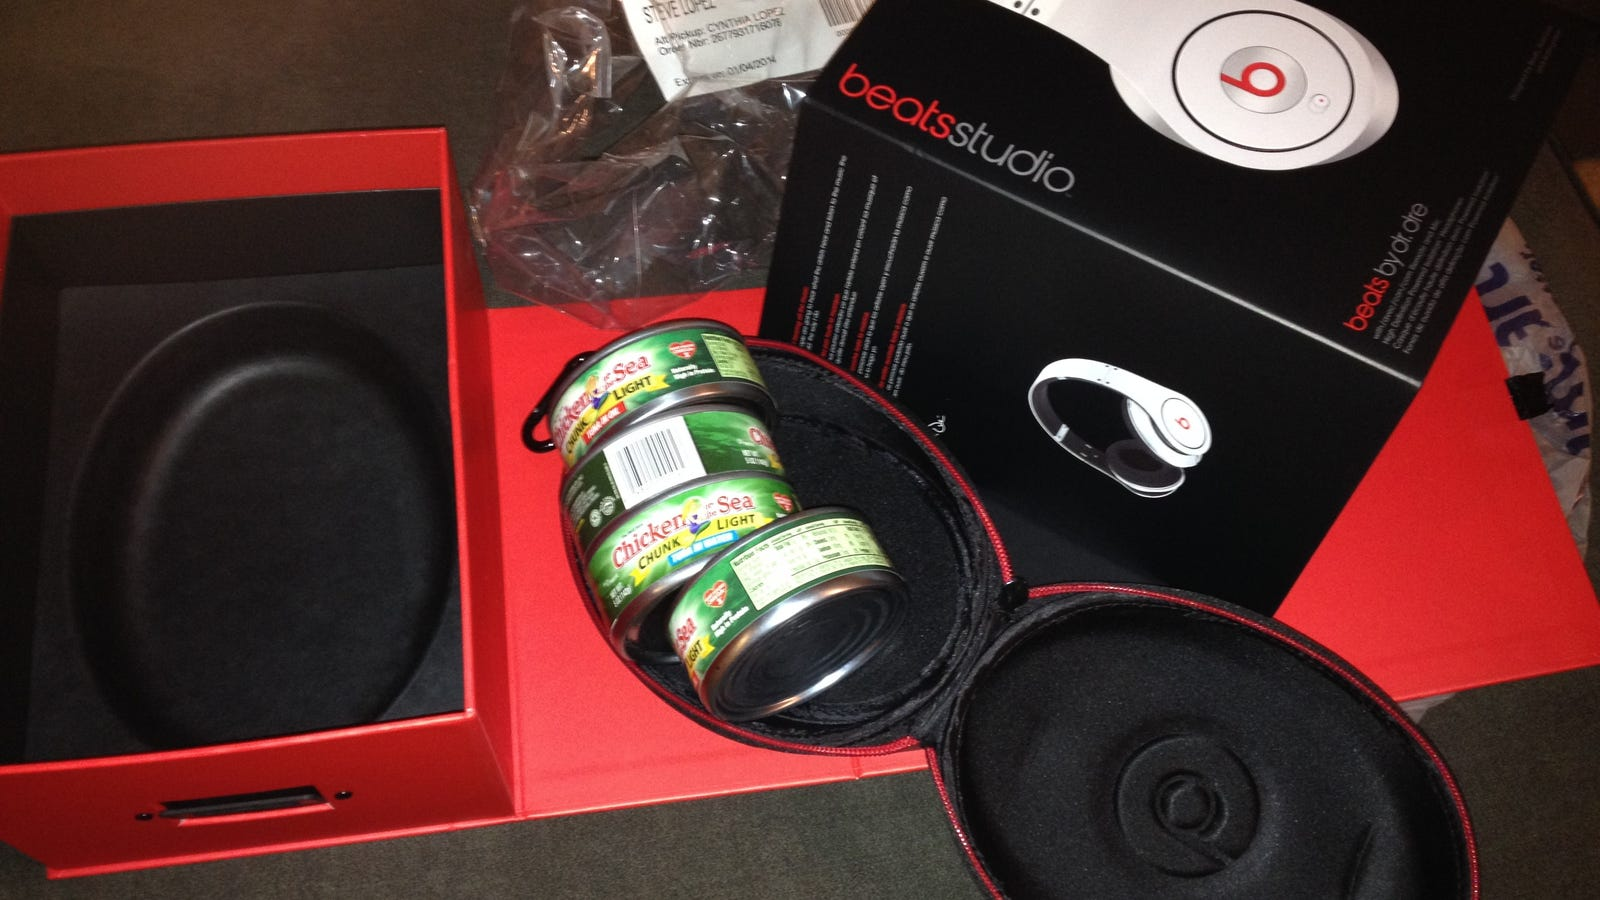 retractable earbuds iphone - Family Opens Beats Headphones on Christmas, Finds Tuna Instead